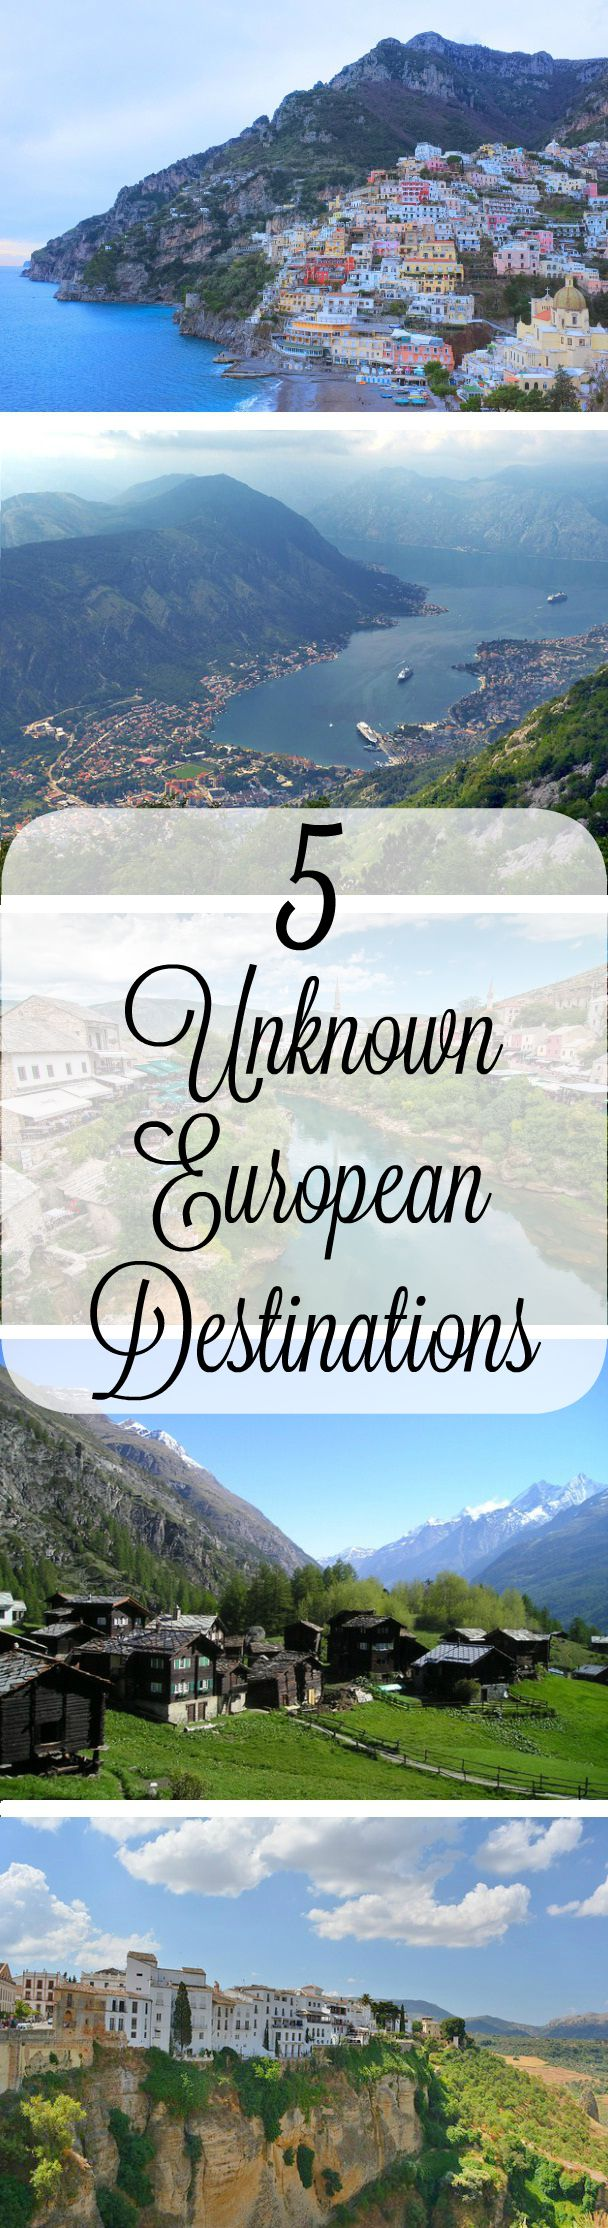 5 Unknown European Destinations